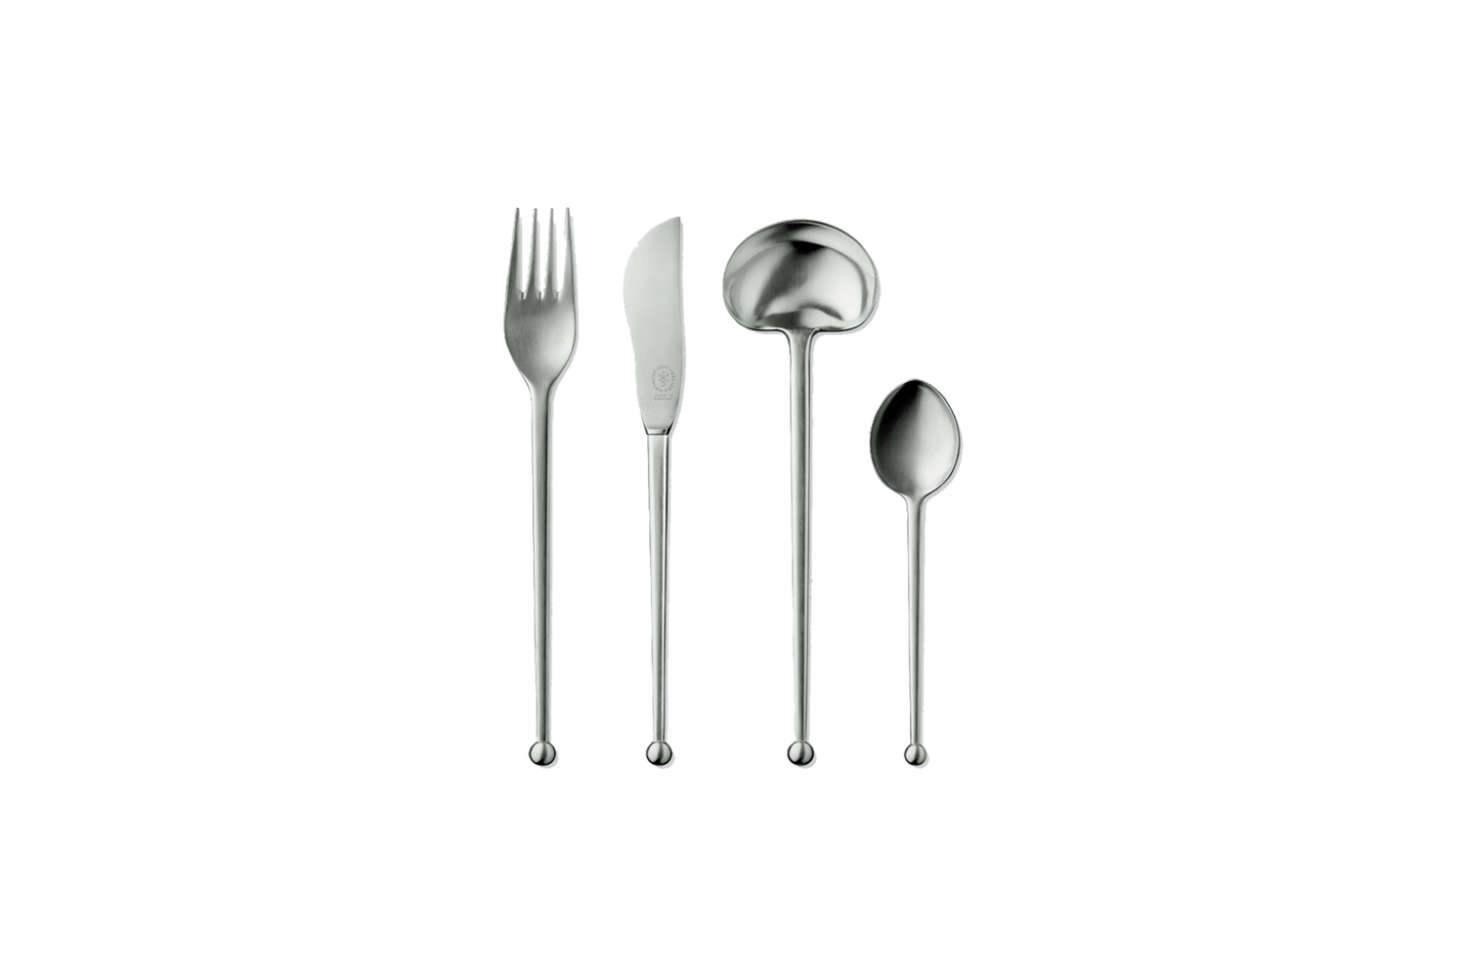 10 Best Sculptural Flatware Choices from the Remodelista Editors